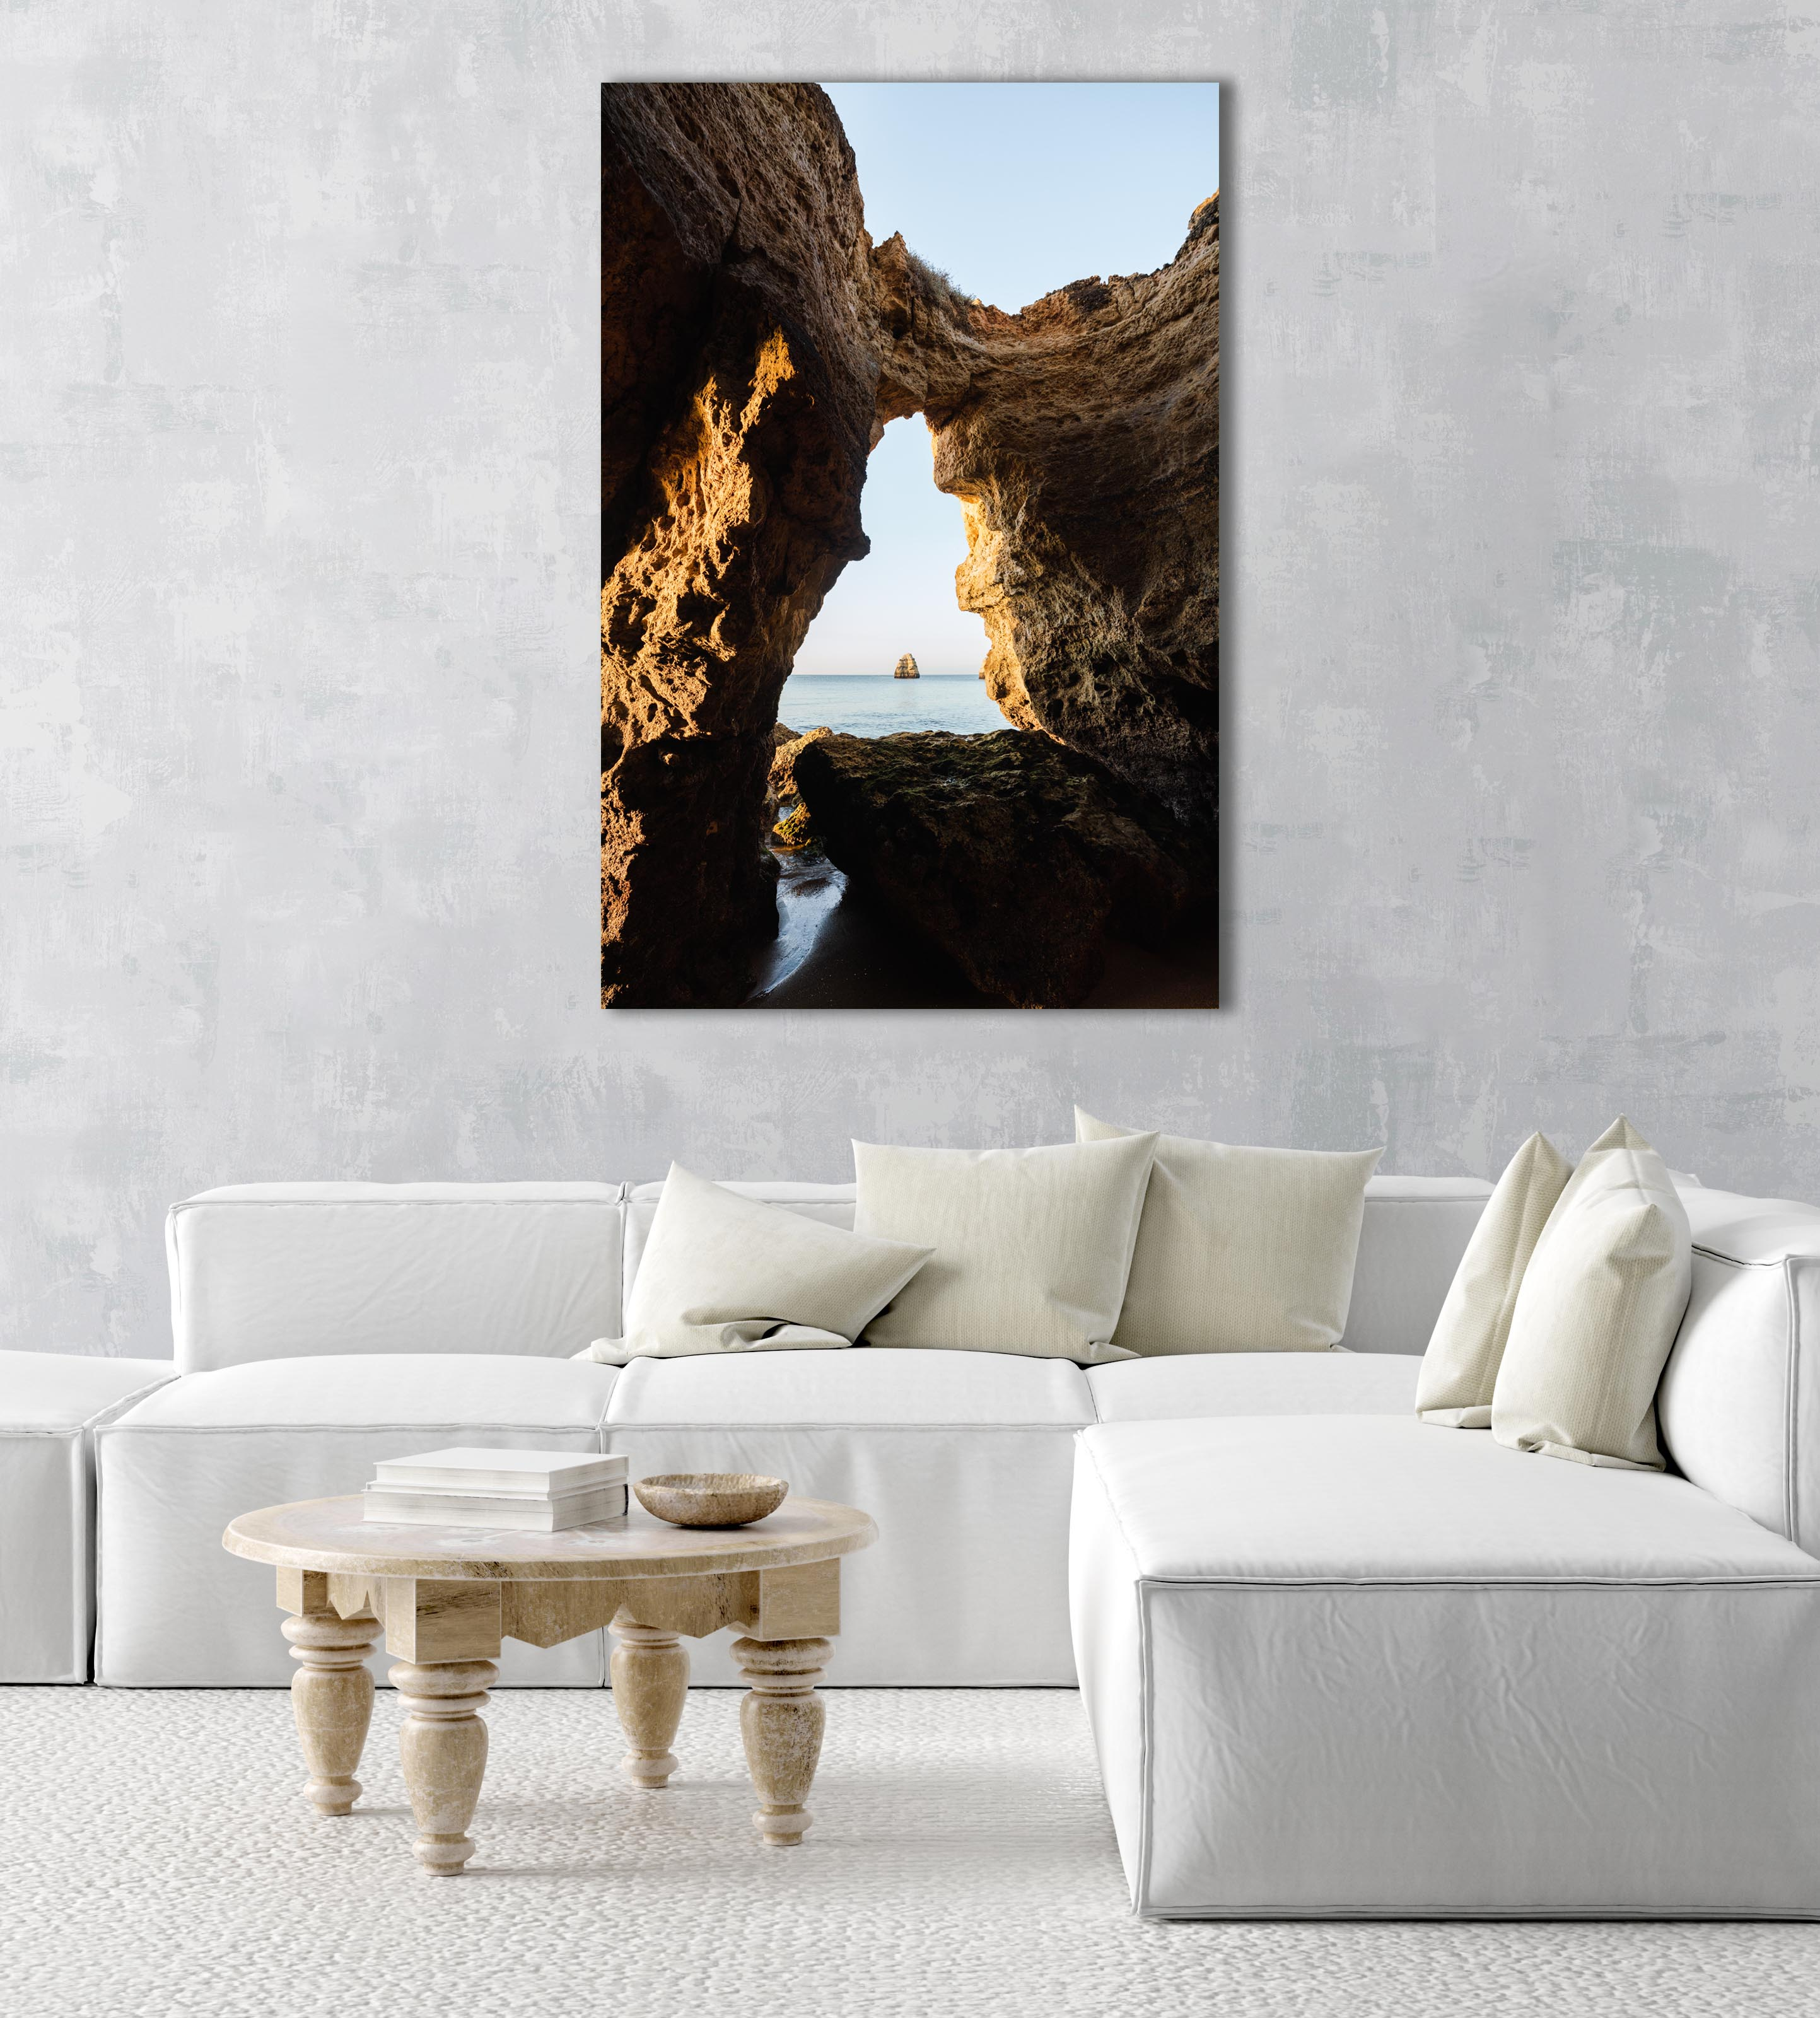 Inside a cave in Lagos looking out to blue sea and rock